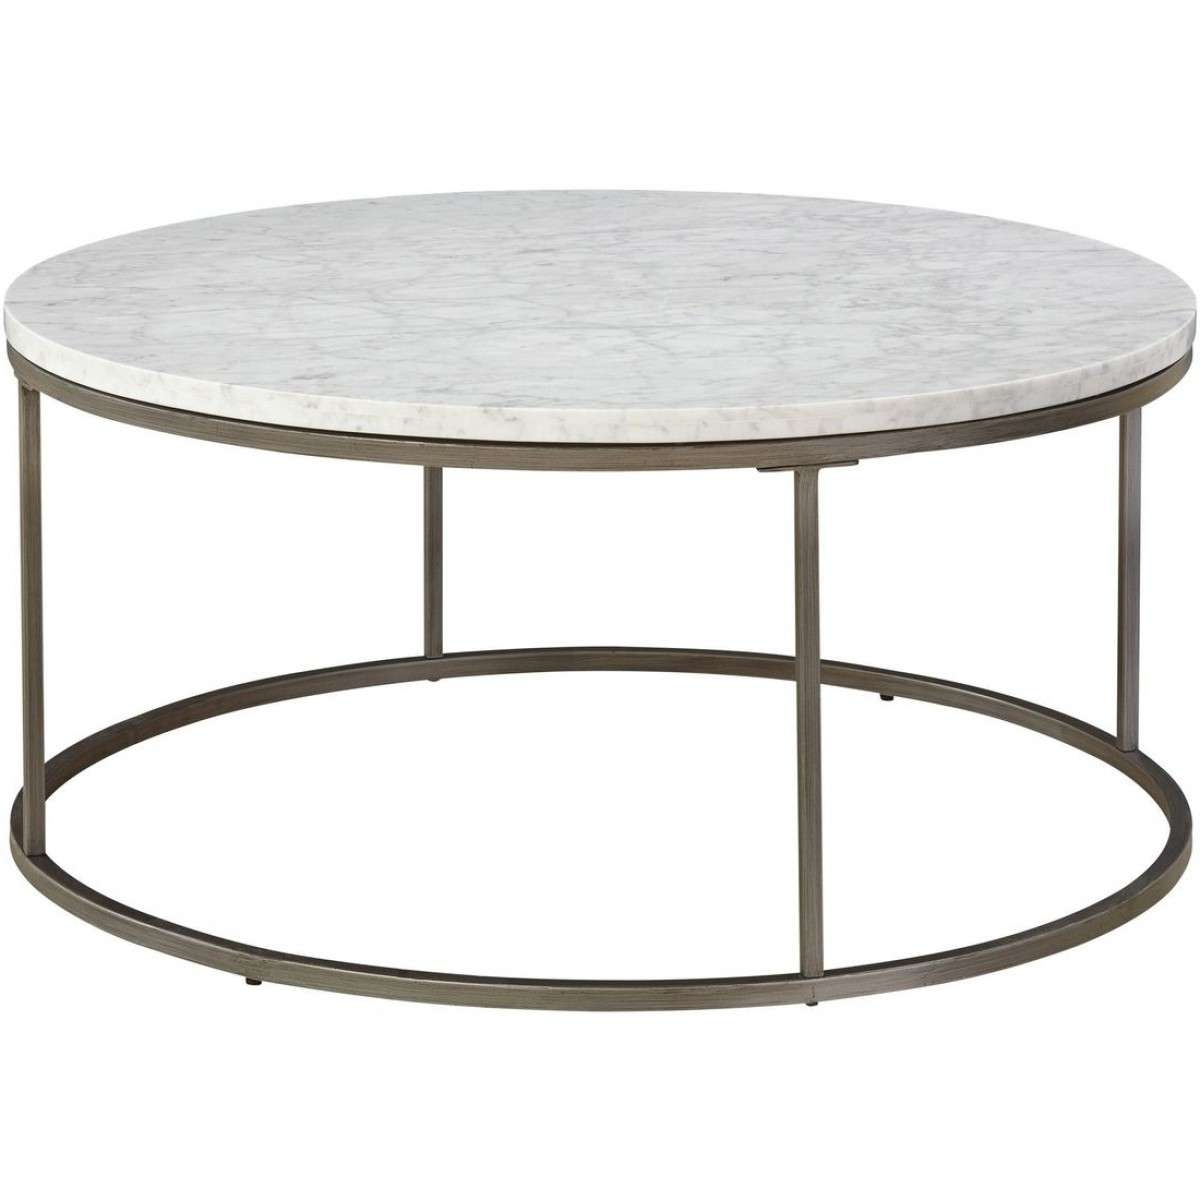 Alana Round Coffee Table With White Marble Top Throughout Best And Newest Marble Round Coffee Tables (Gallery 16 of 20)